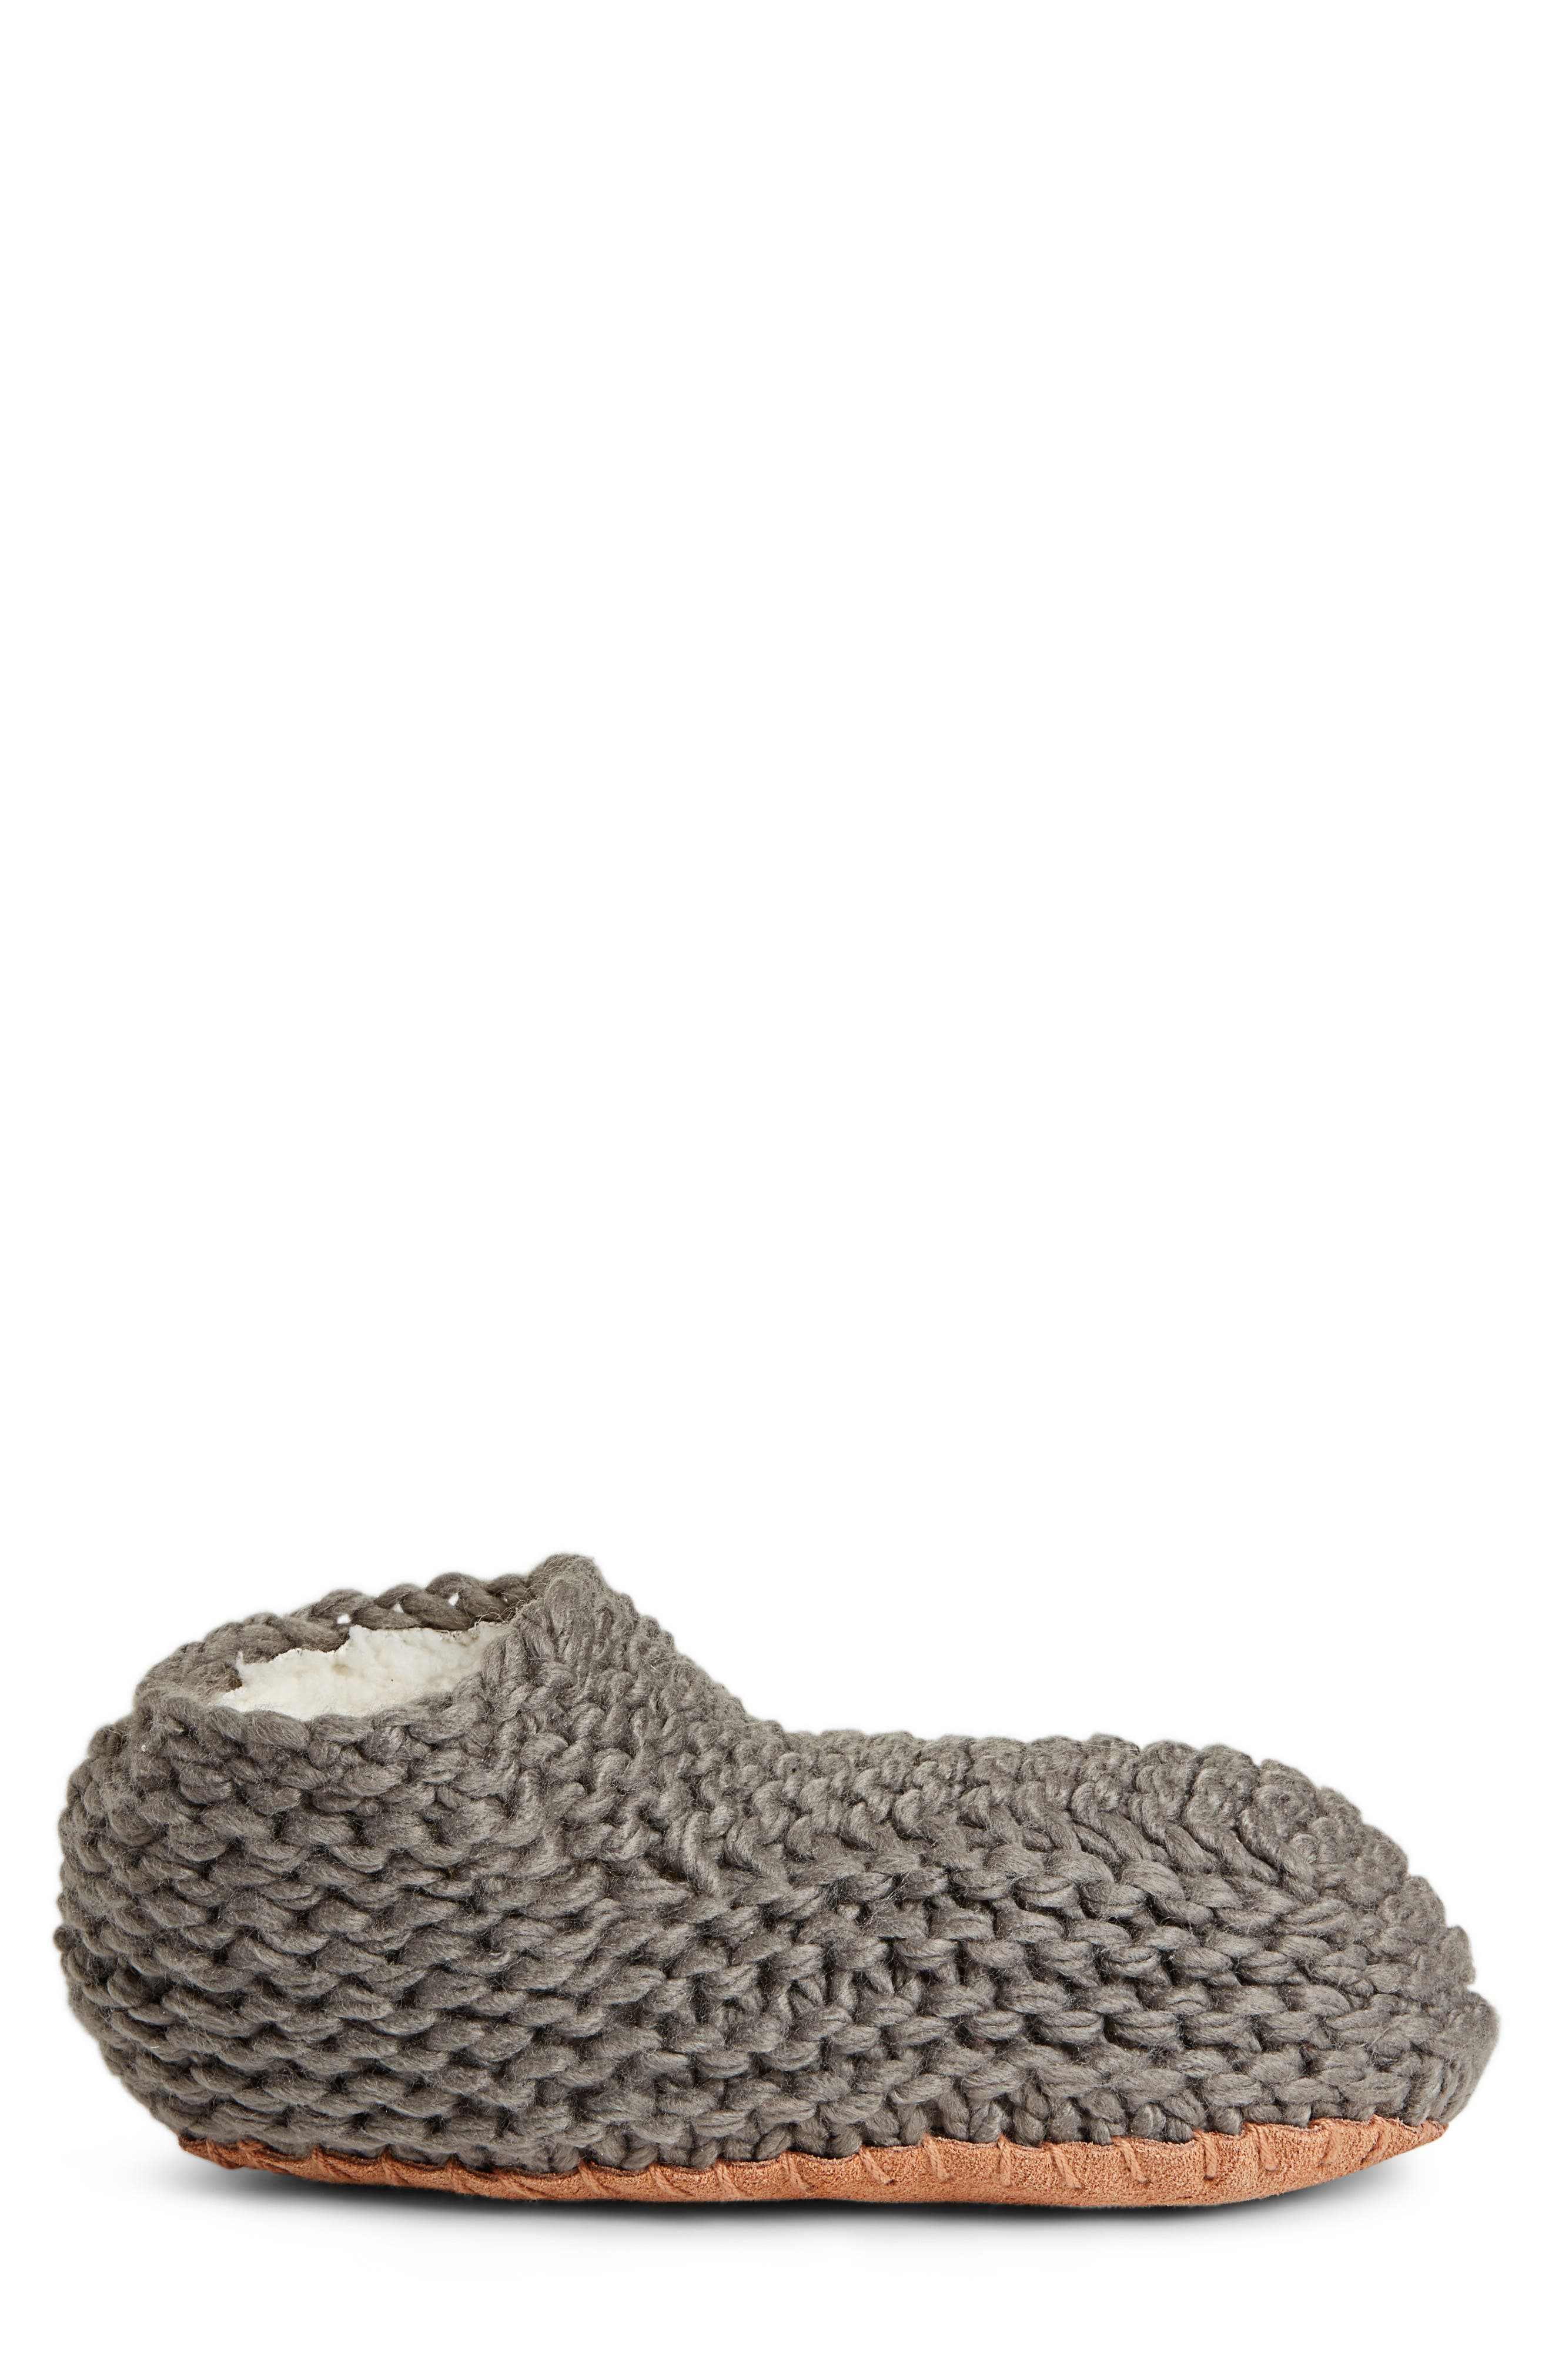 Knit Slipper Bootie,                             Alternate thumbnail 3, color,                             020